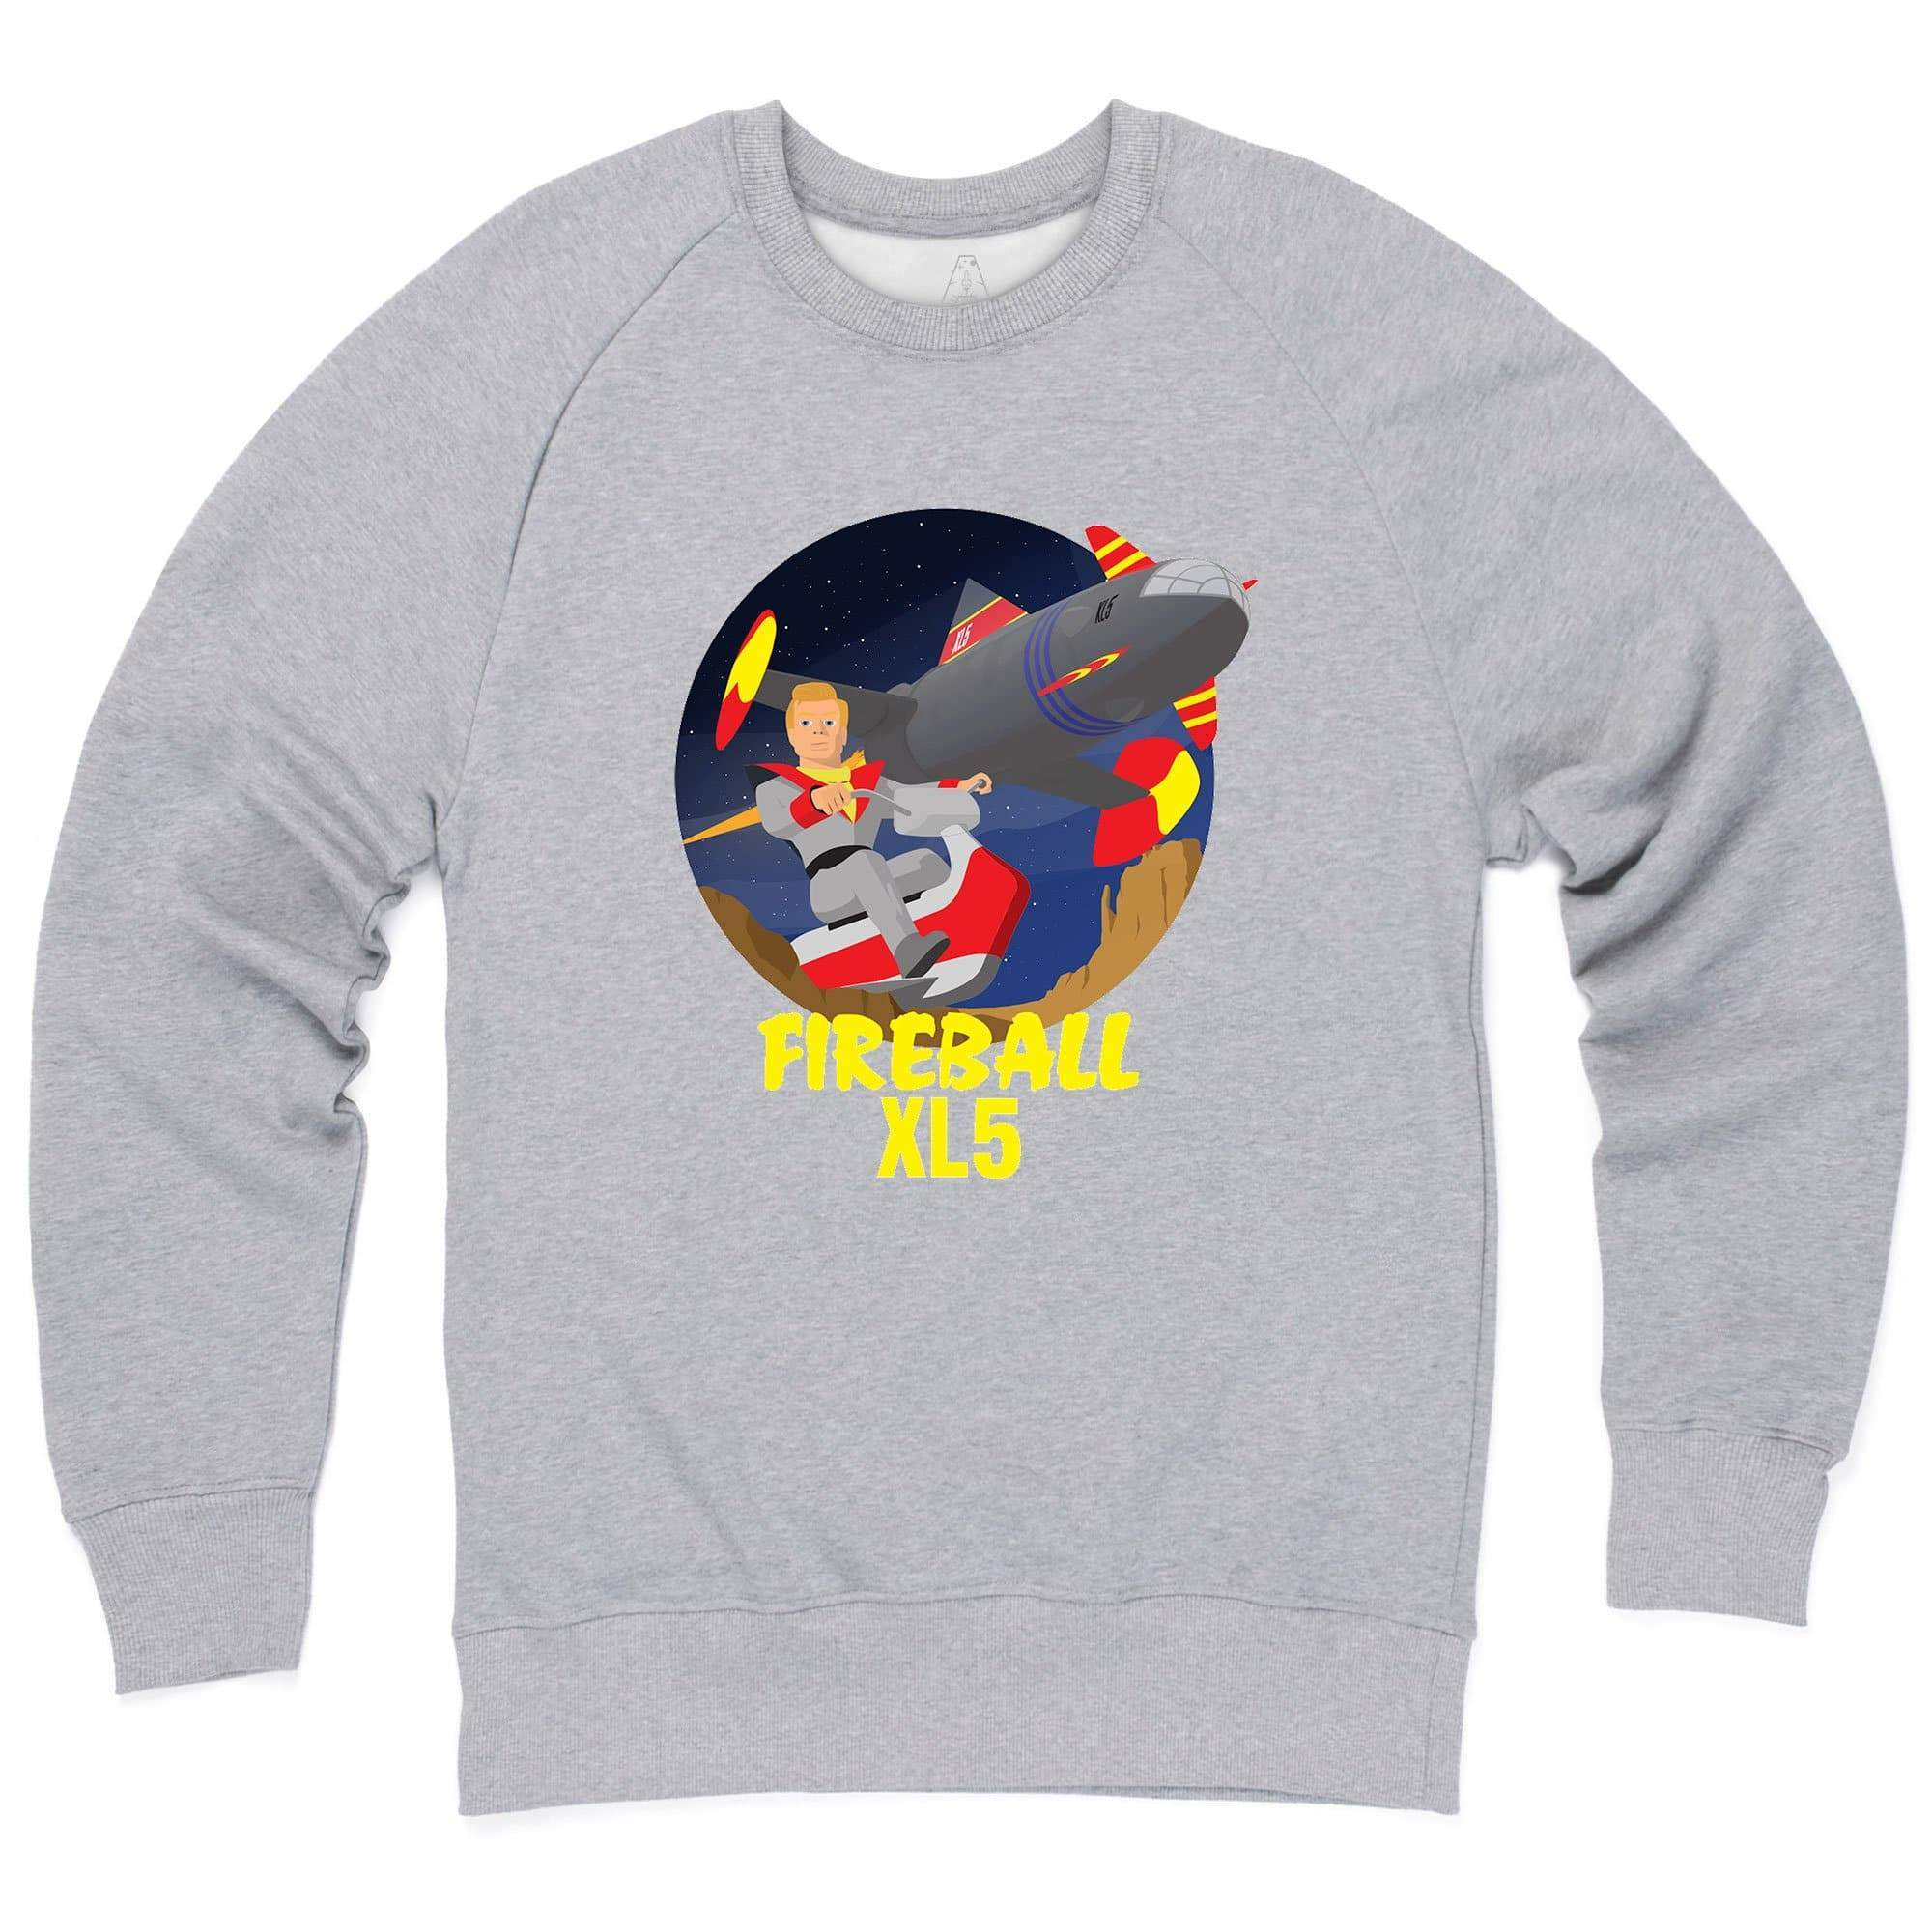 Fireball XL5 Sweatshirt [Official & Exclusive] - The Gerry Anderson Store